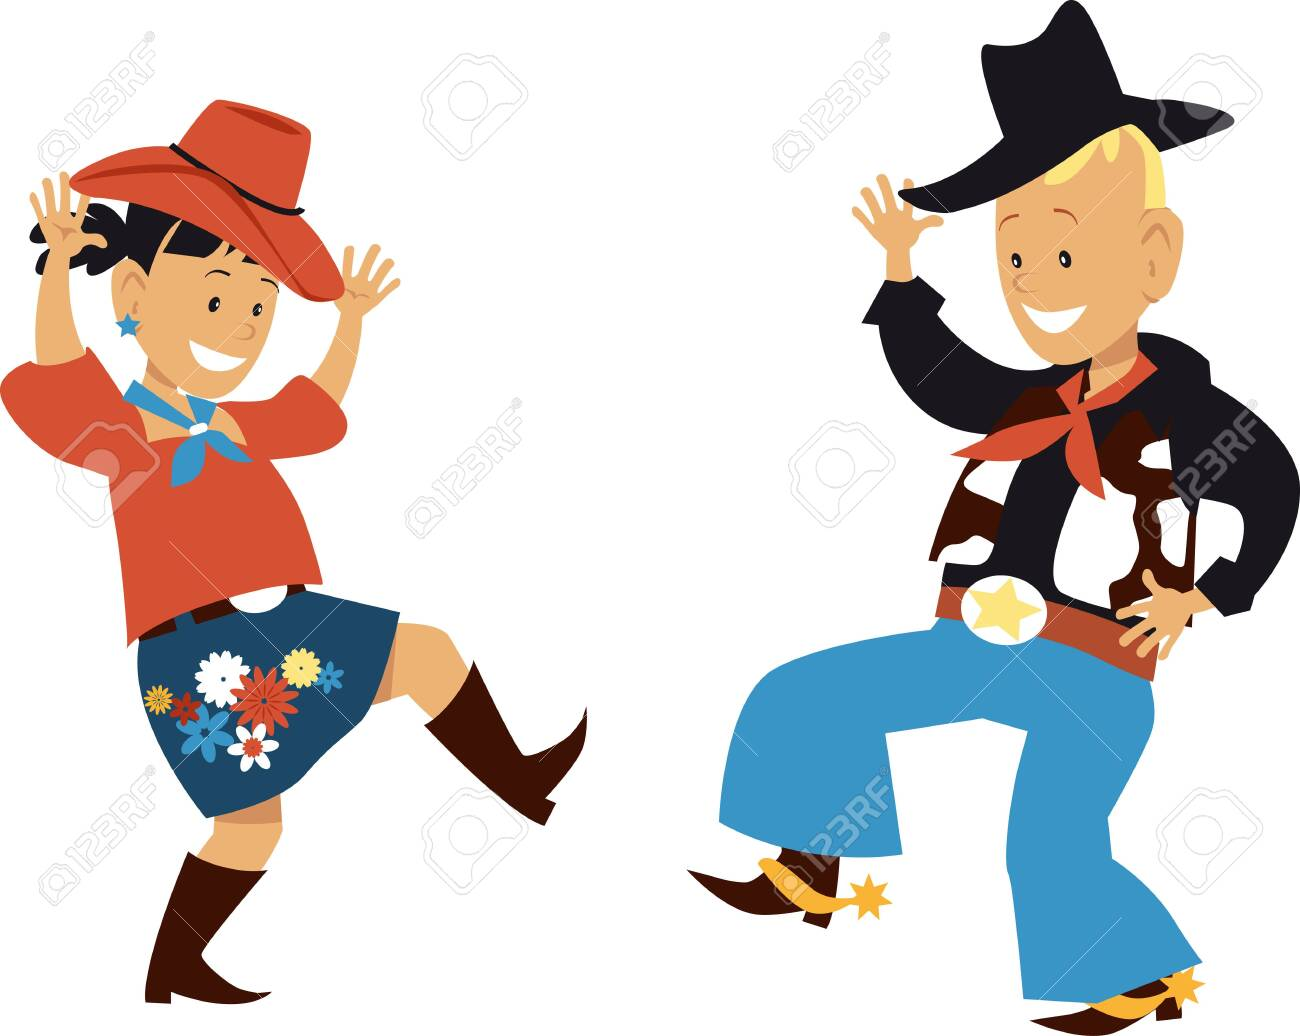 Two cute cartoon kids dancing western country style, vector illustration.